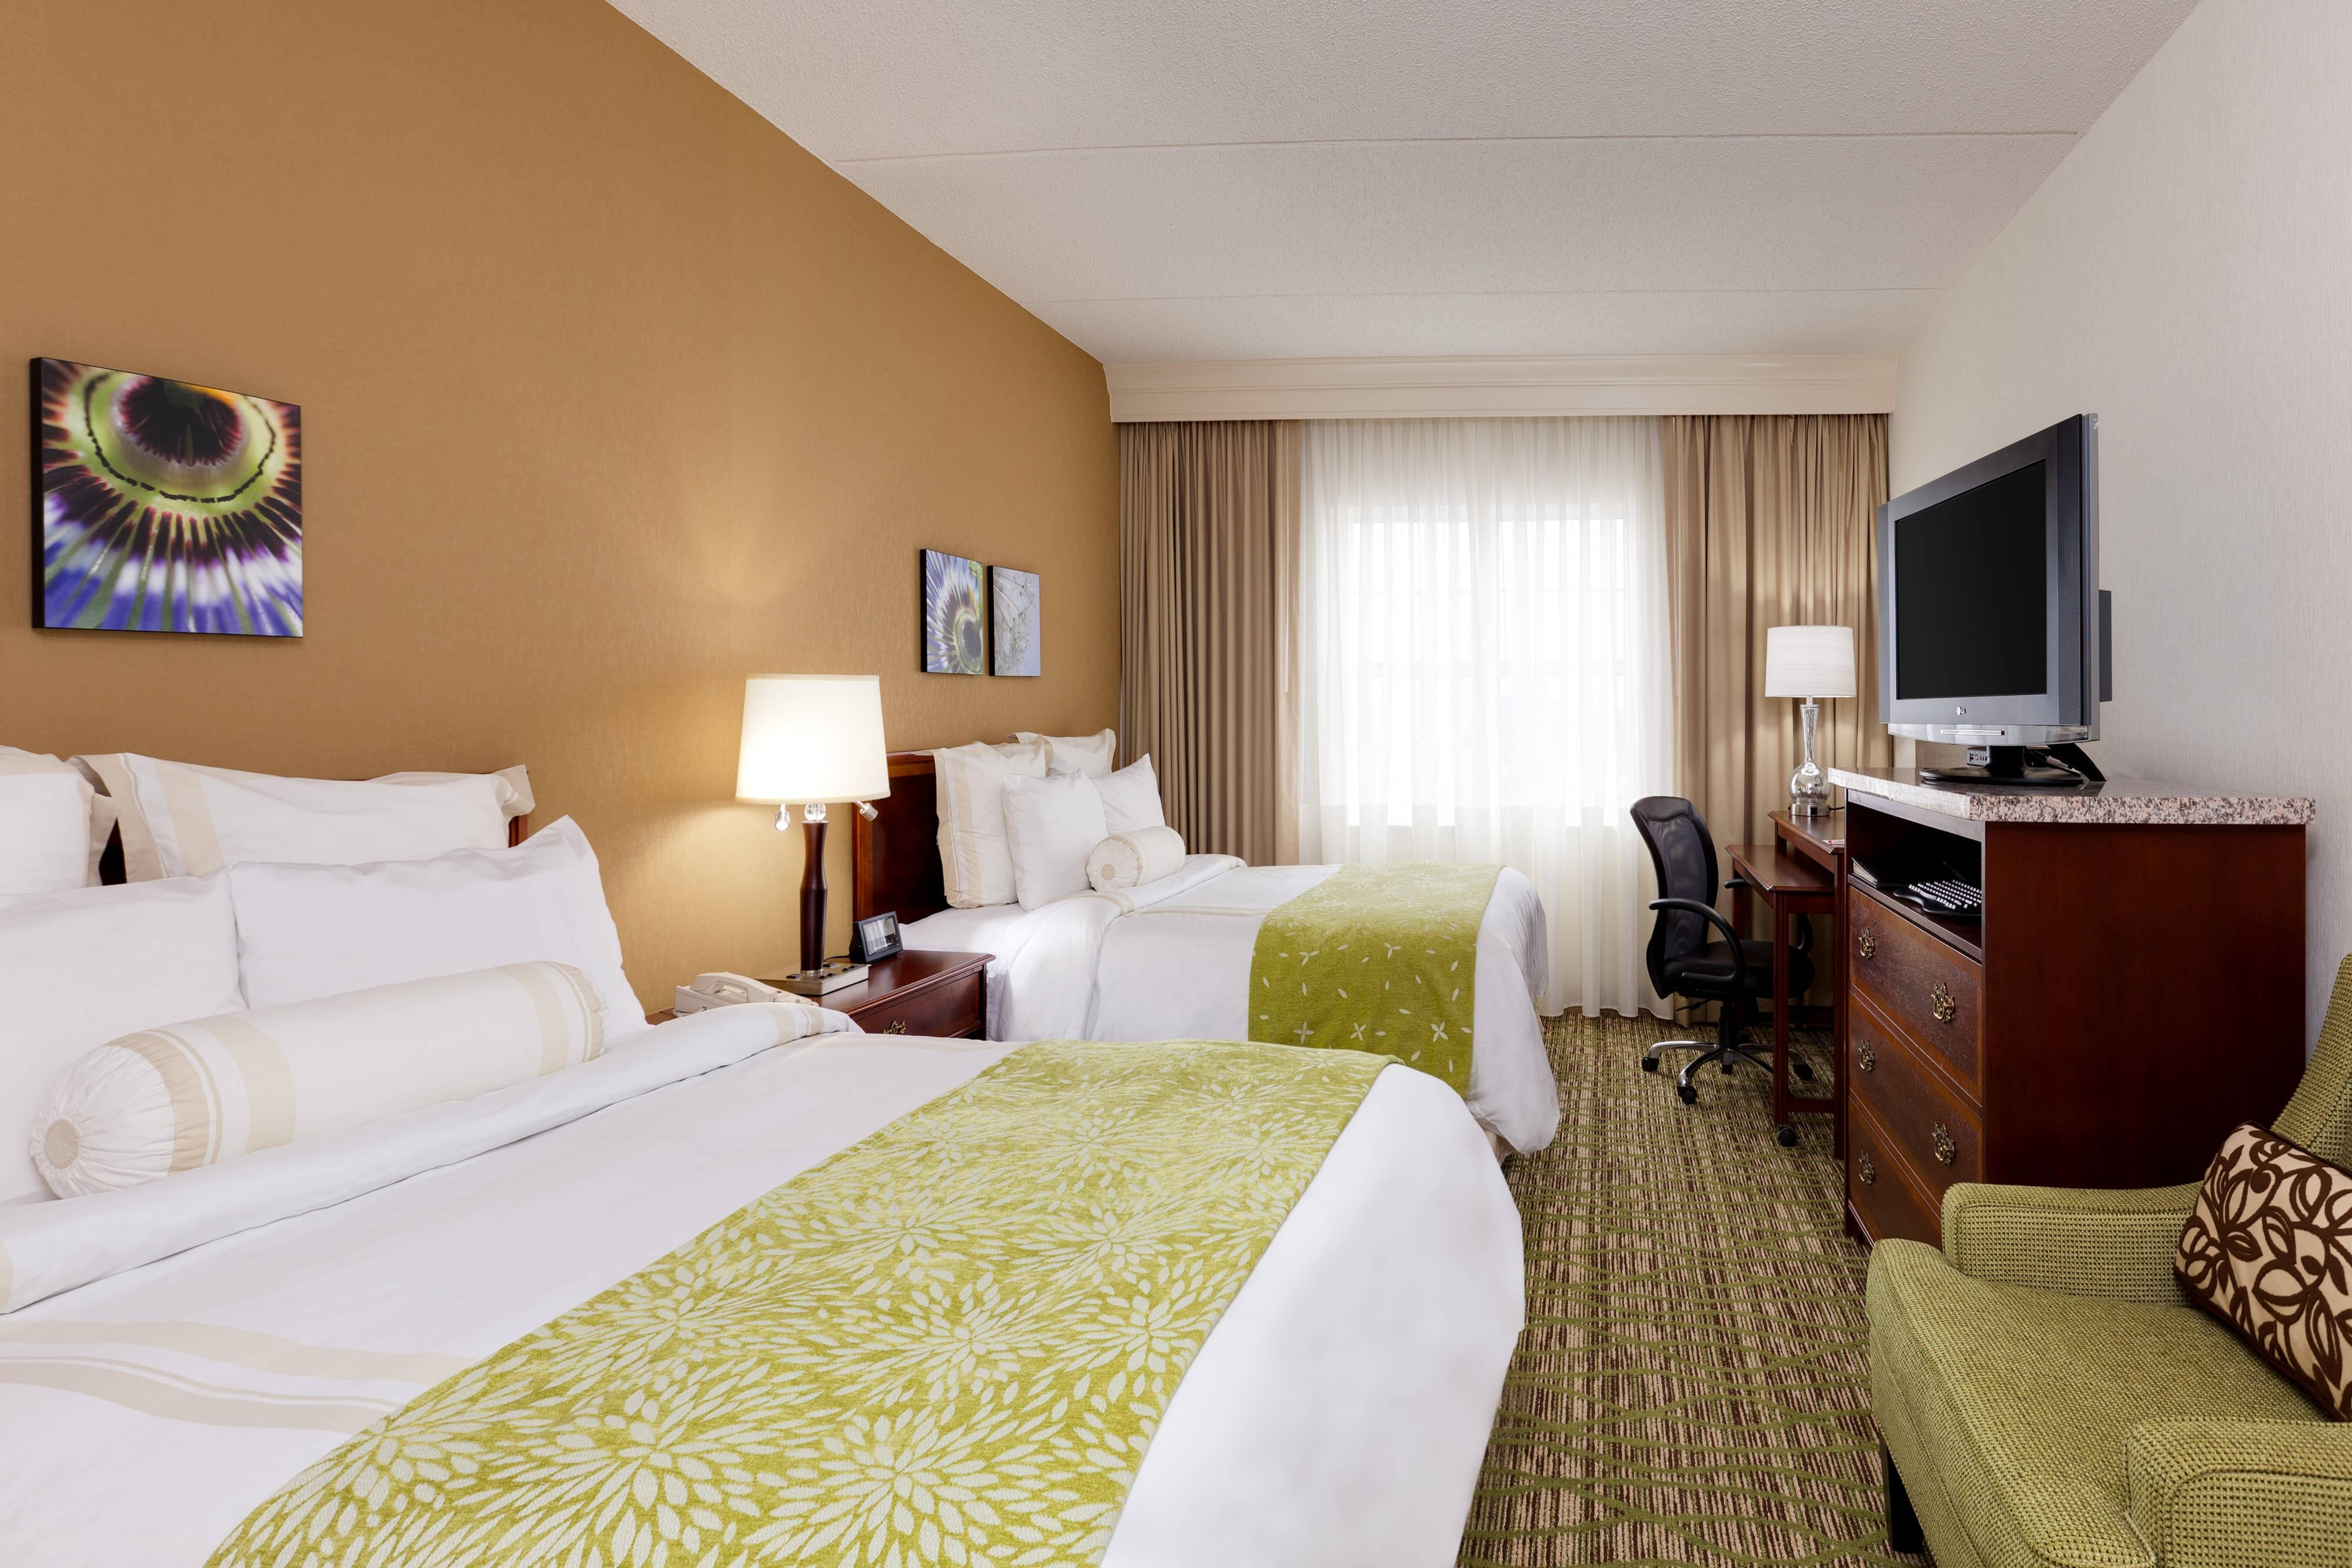 Midway Hotel Rooms